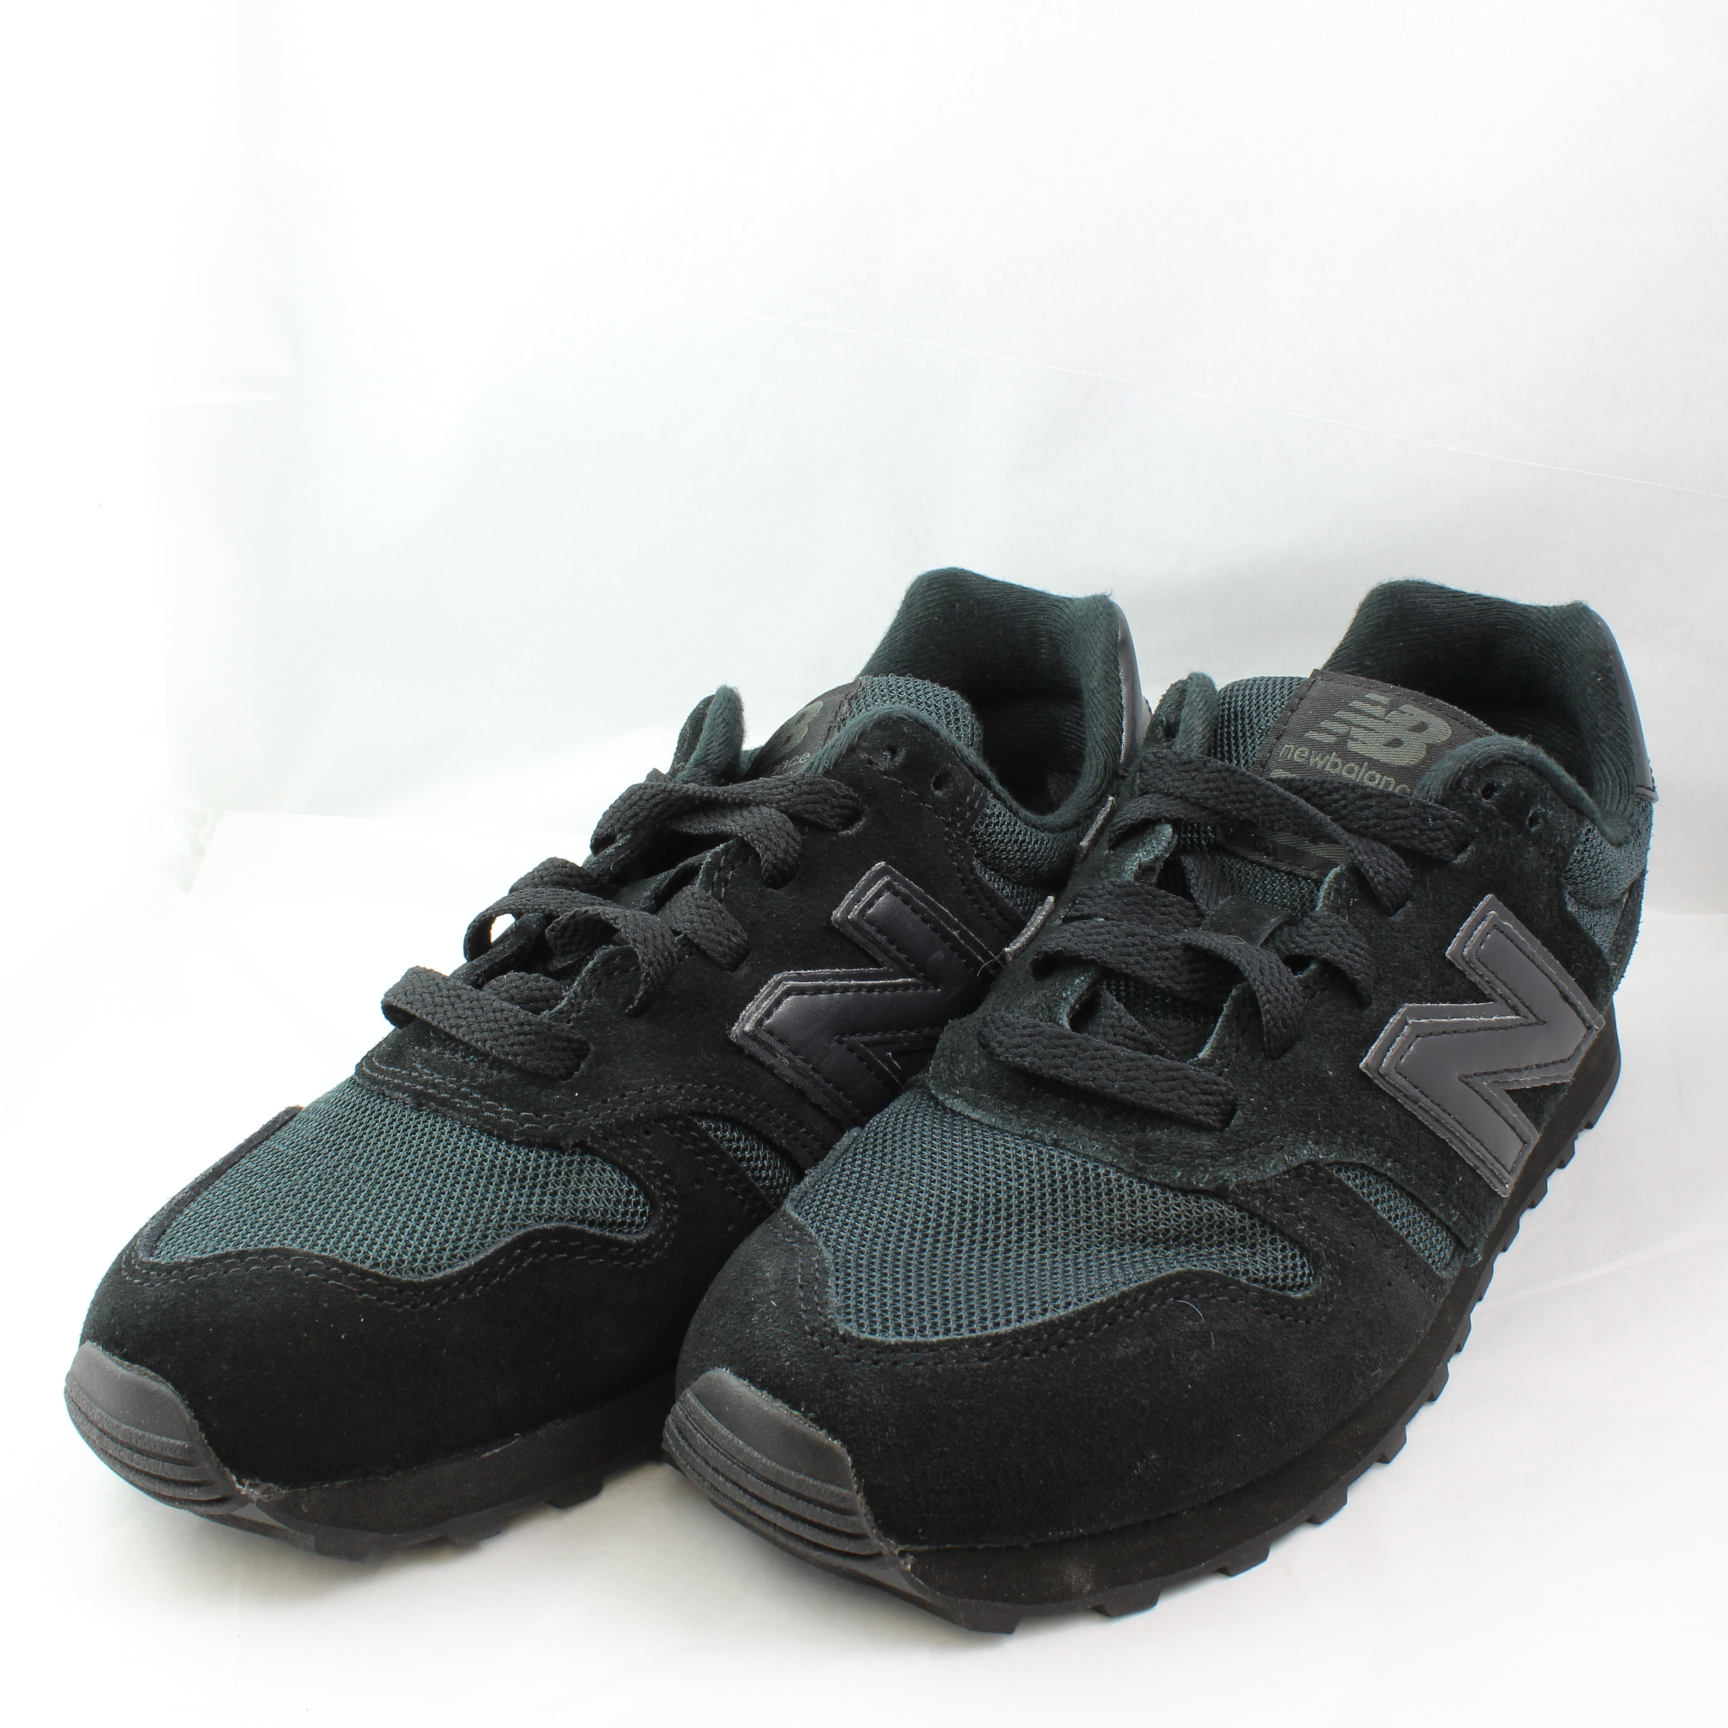 373 Trainers In Black - Black New Balance